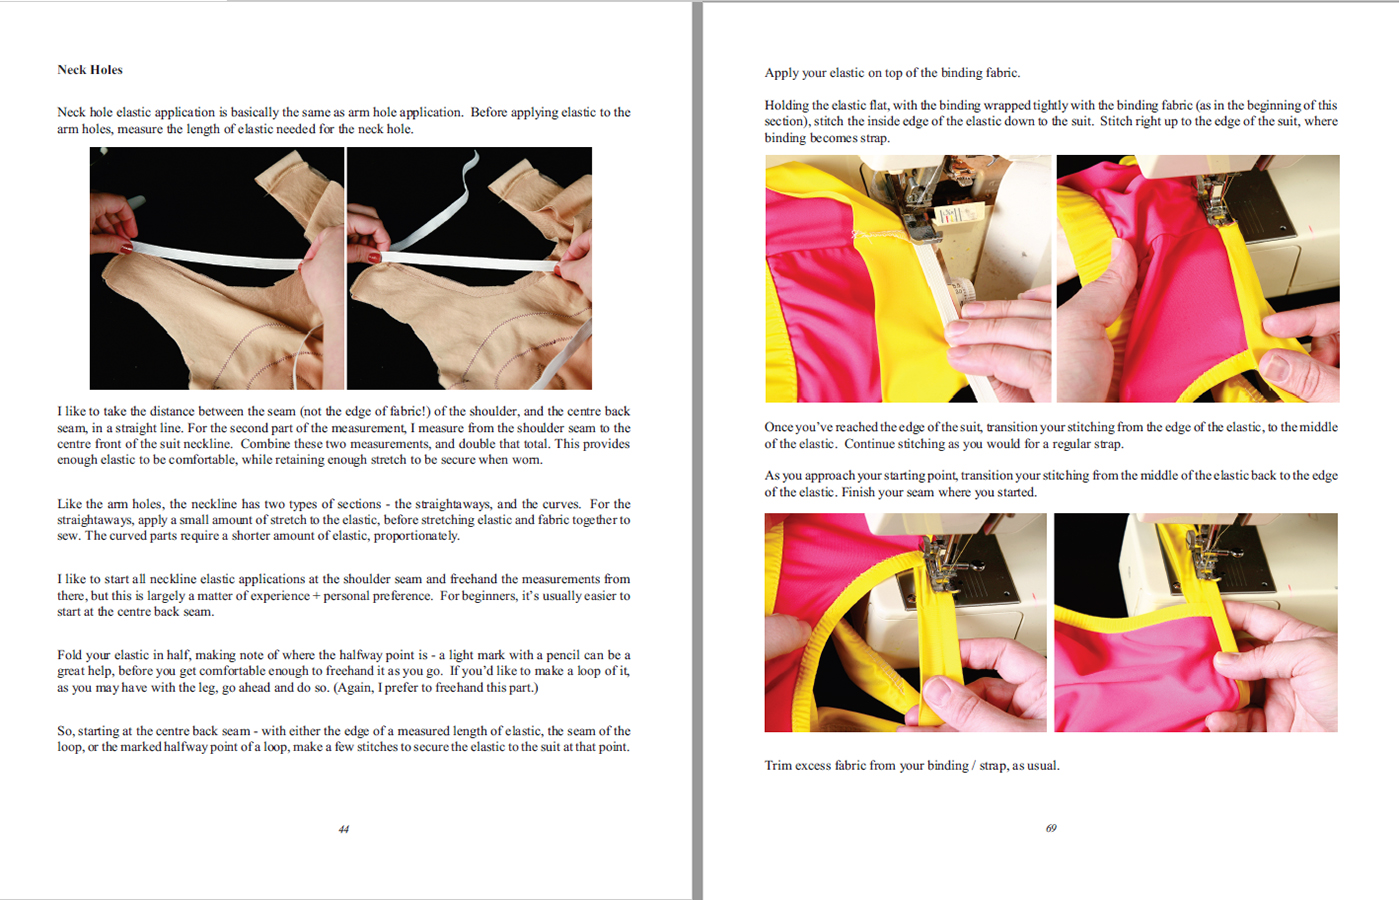 A scan of two sample instruction pages from Custom Swimwear.